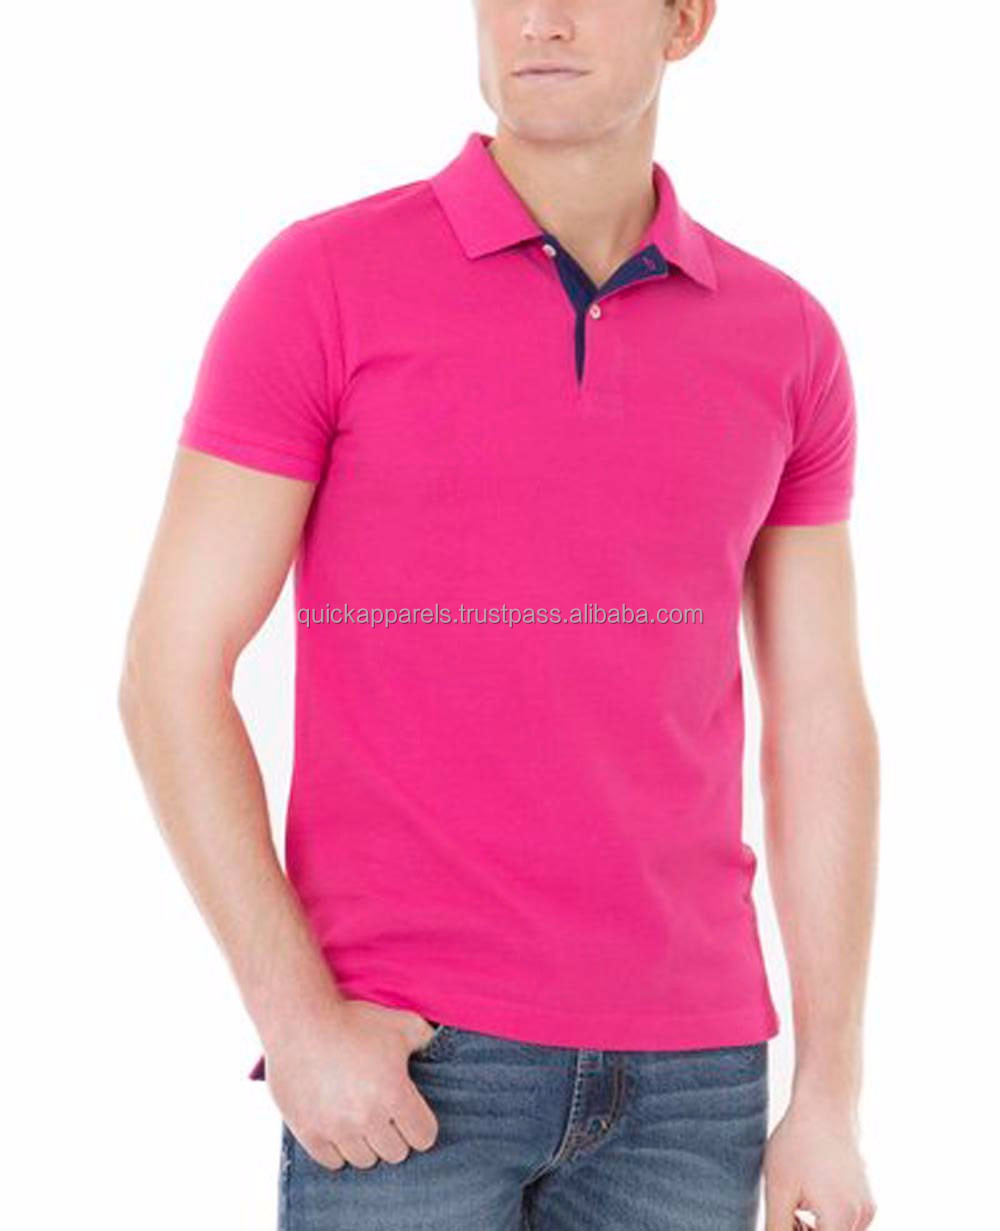 high quality low price customized stylish men's casual blank cotton polo T Shirt